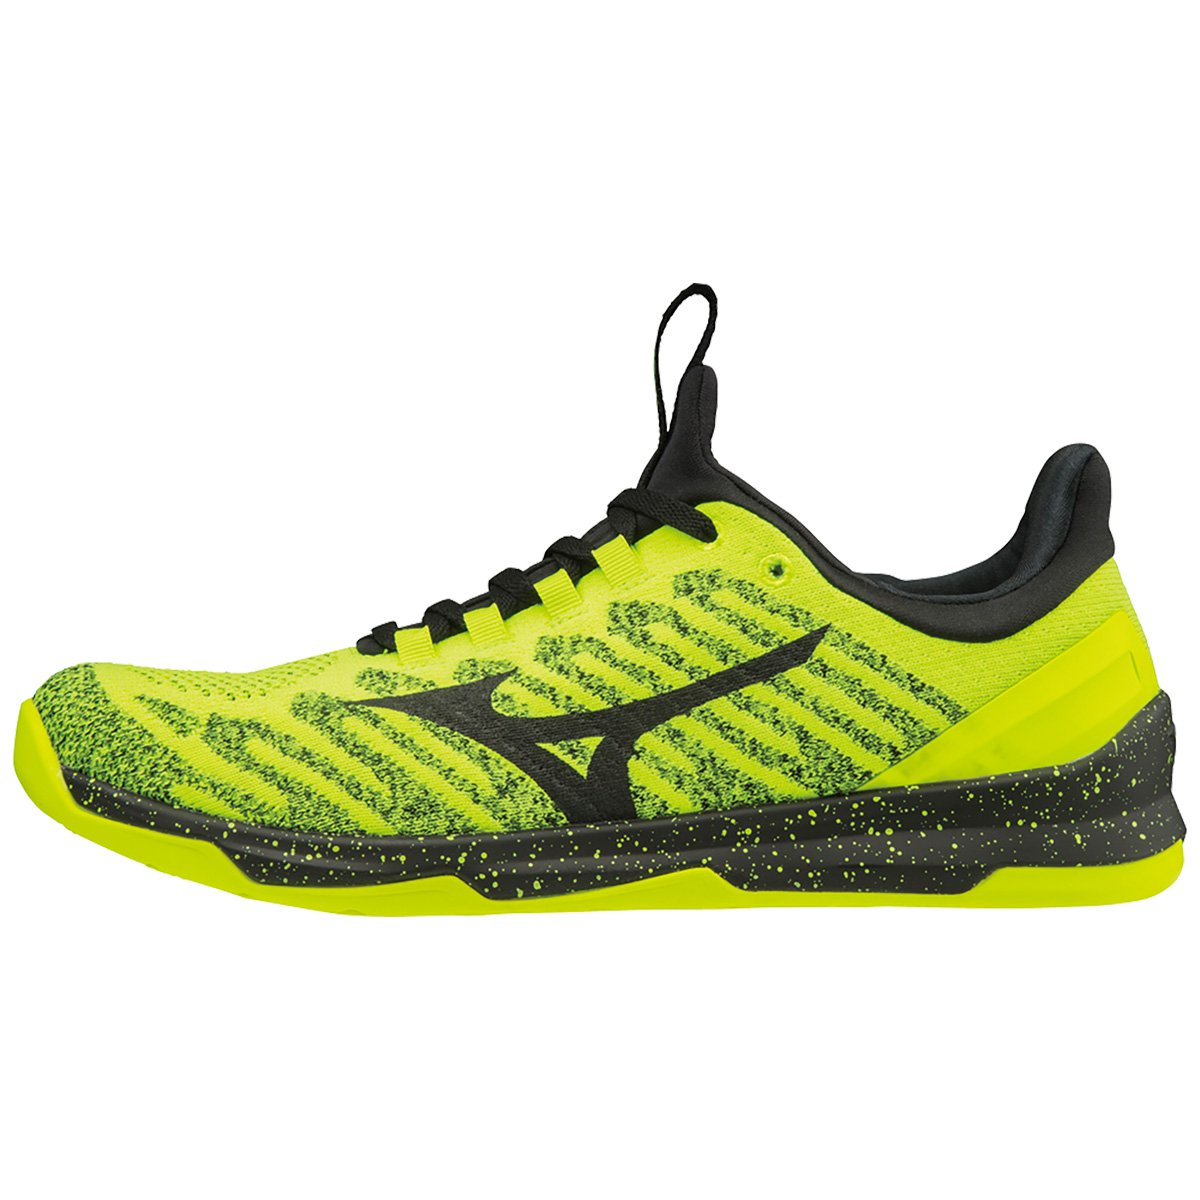 Mizuno MEN'S TC-01 TRAINING SHOE - Yellow/Black